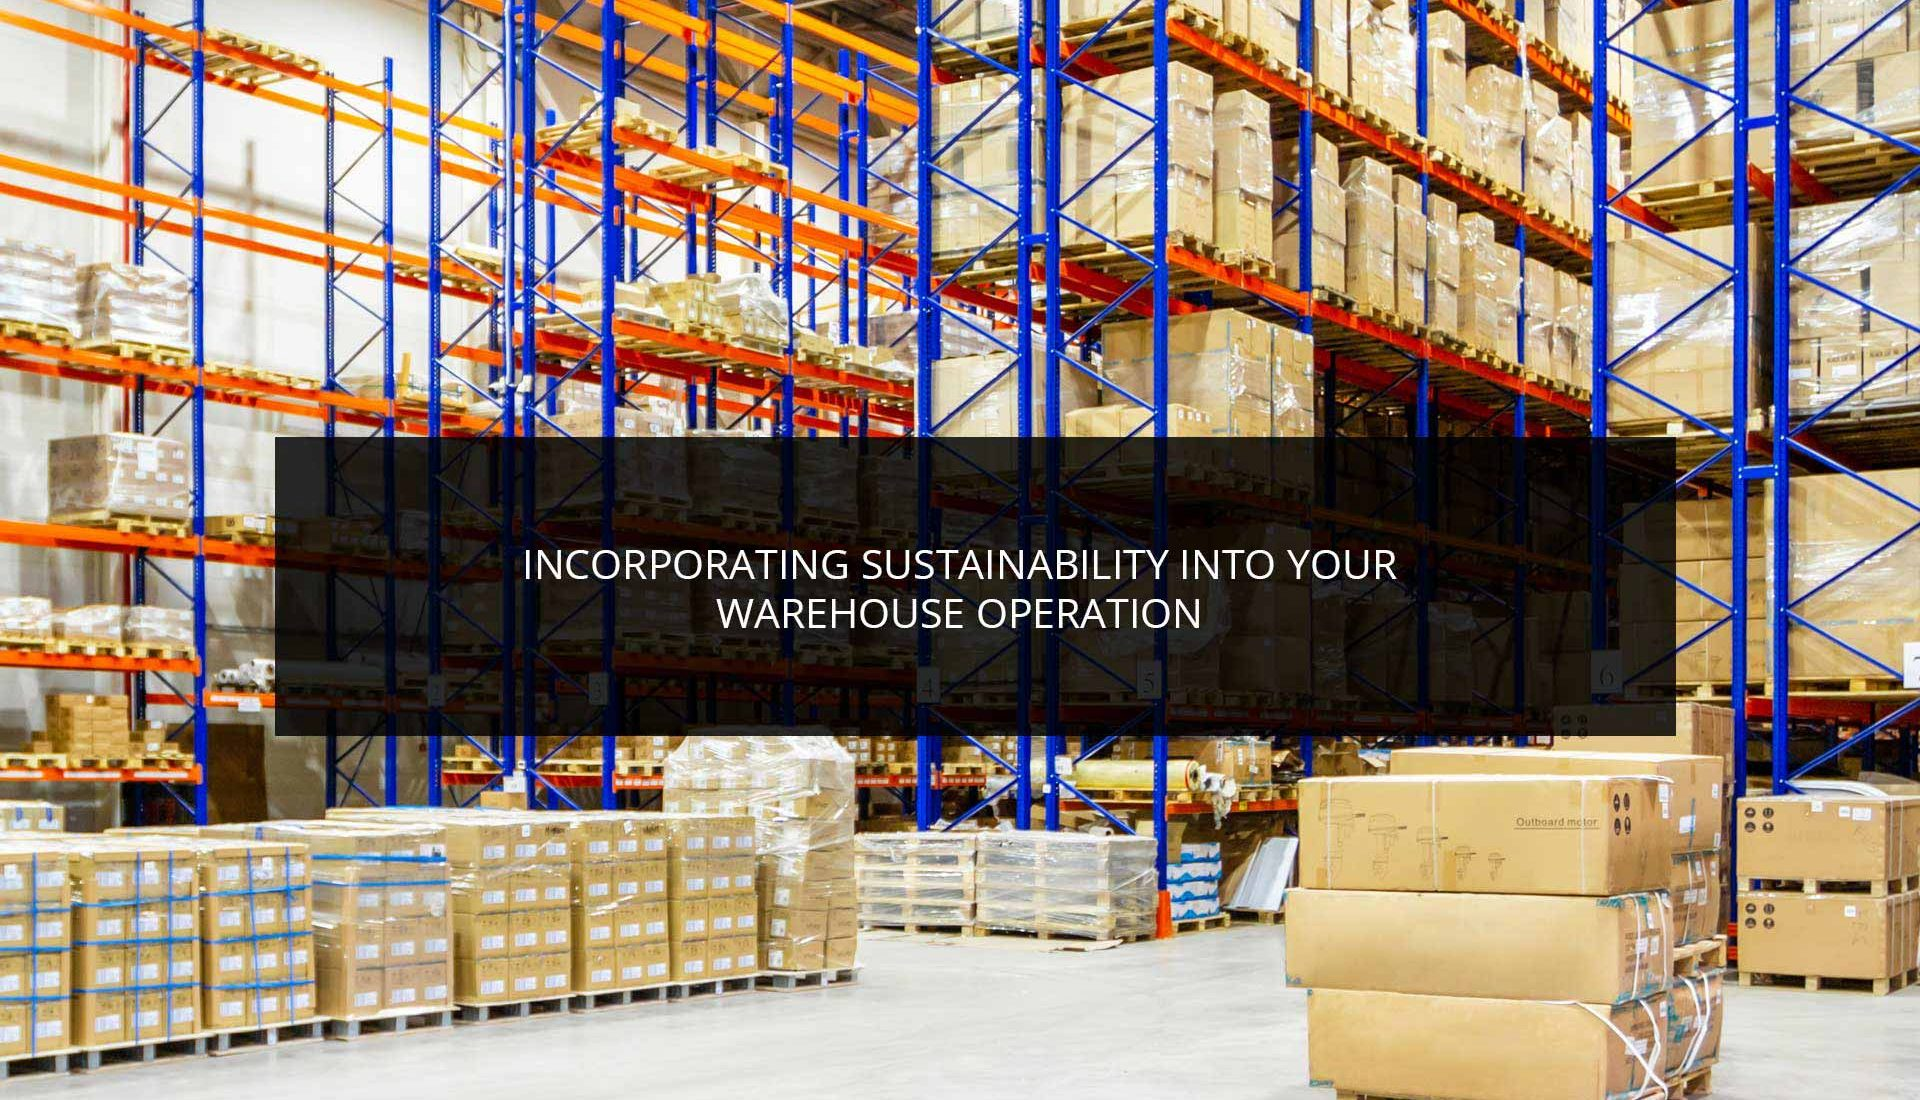 Incorporating Sustainability Into Your Warehouse Operation